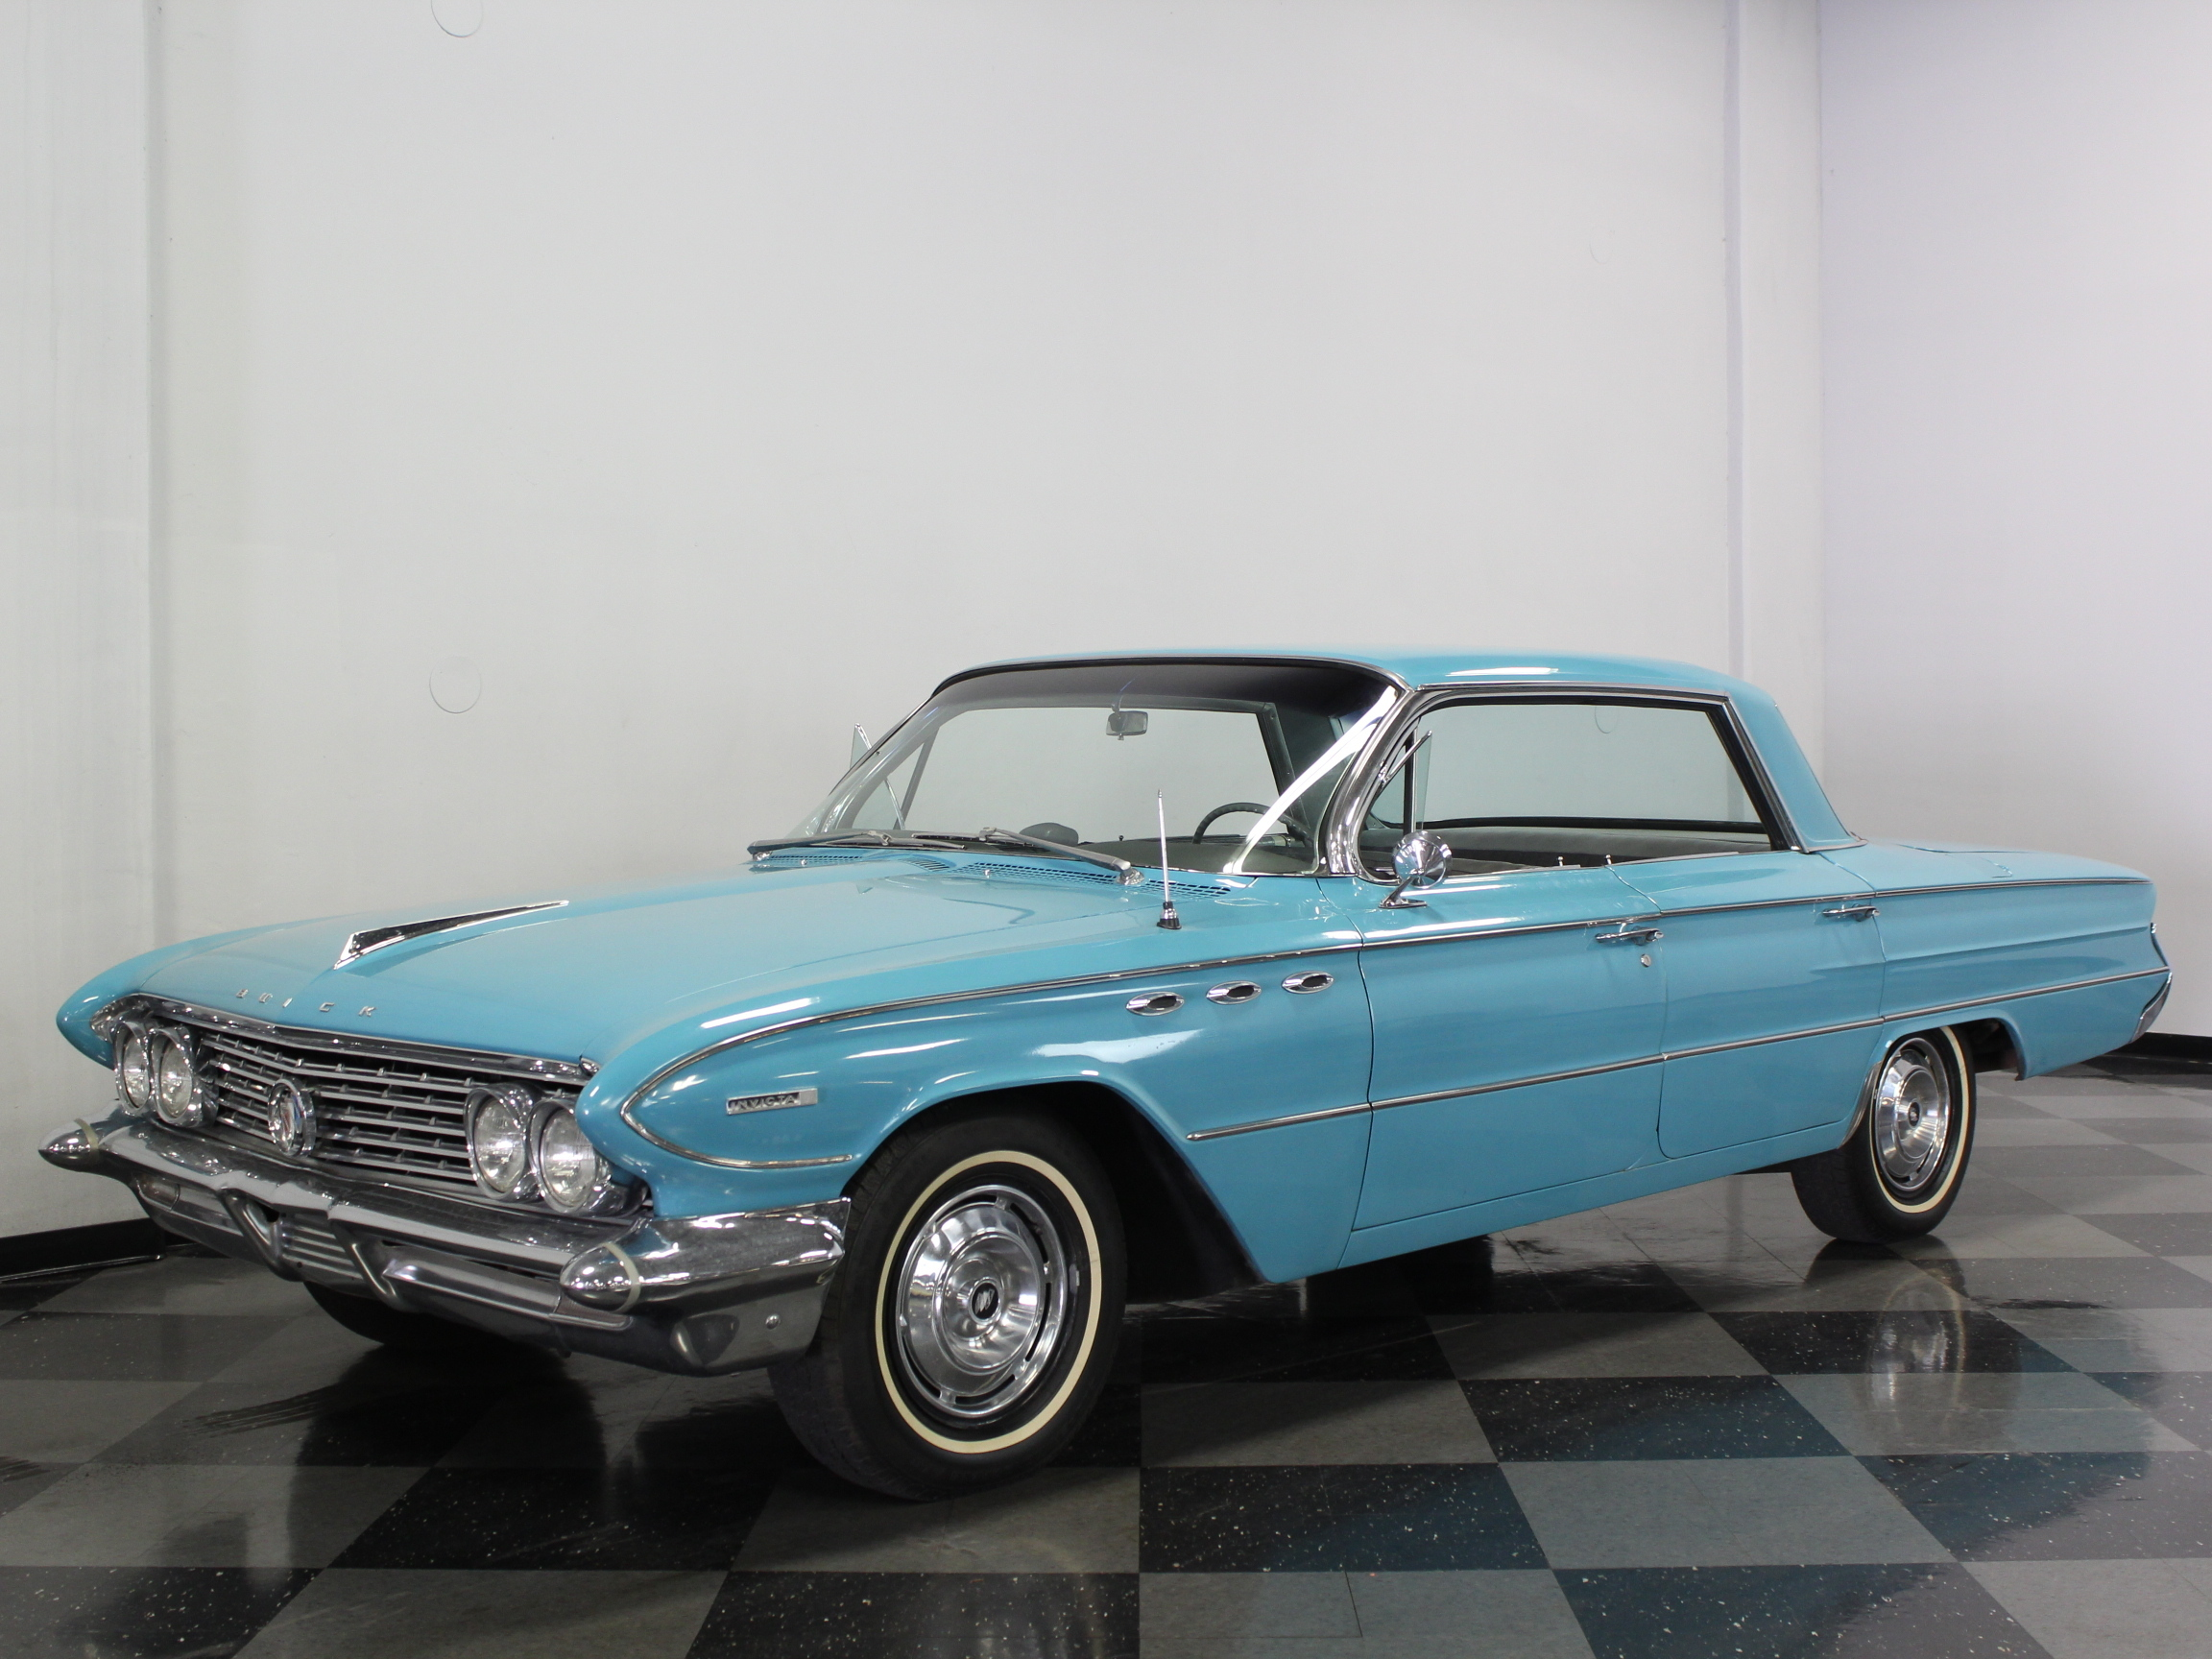 1961 Buick Invicta Streetside Classics The Nation S Top Consignment Dealer Of Classic And